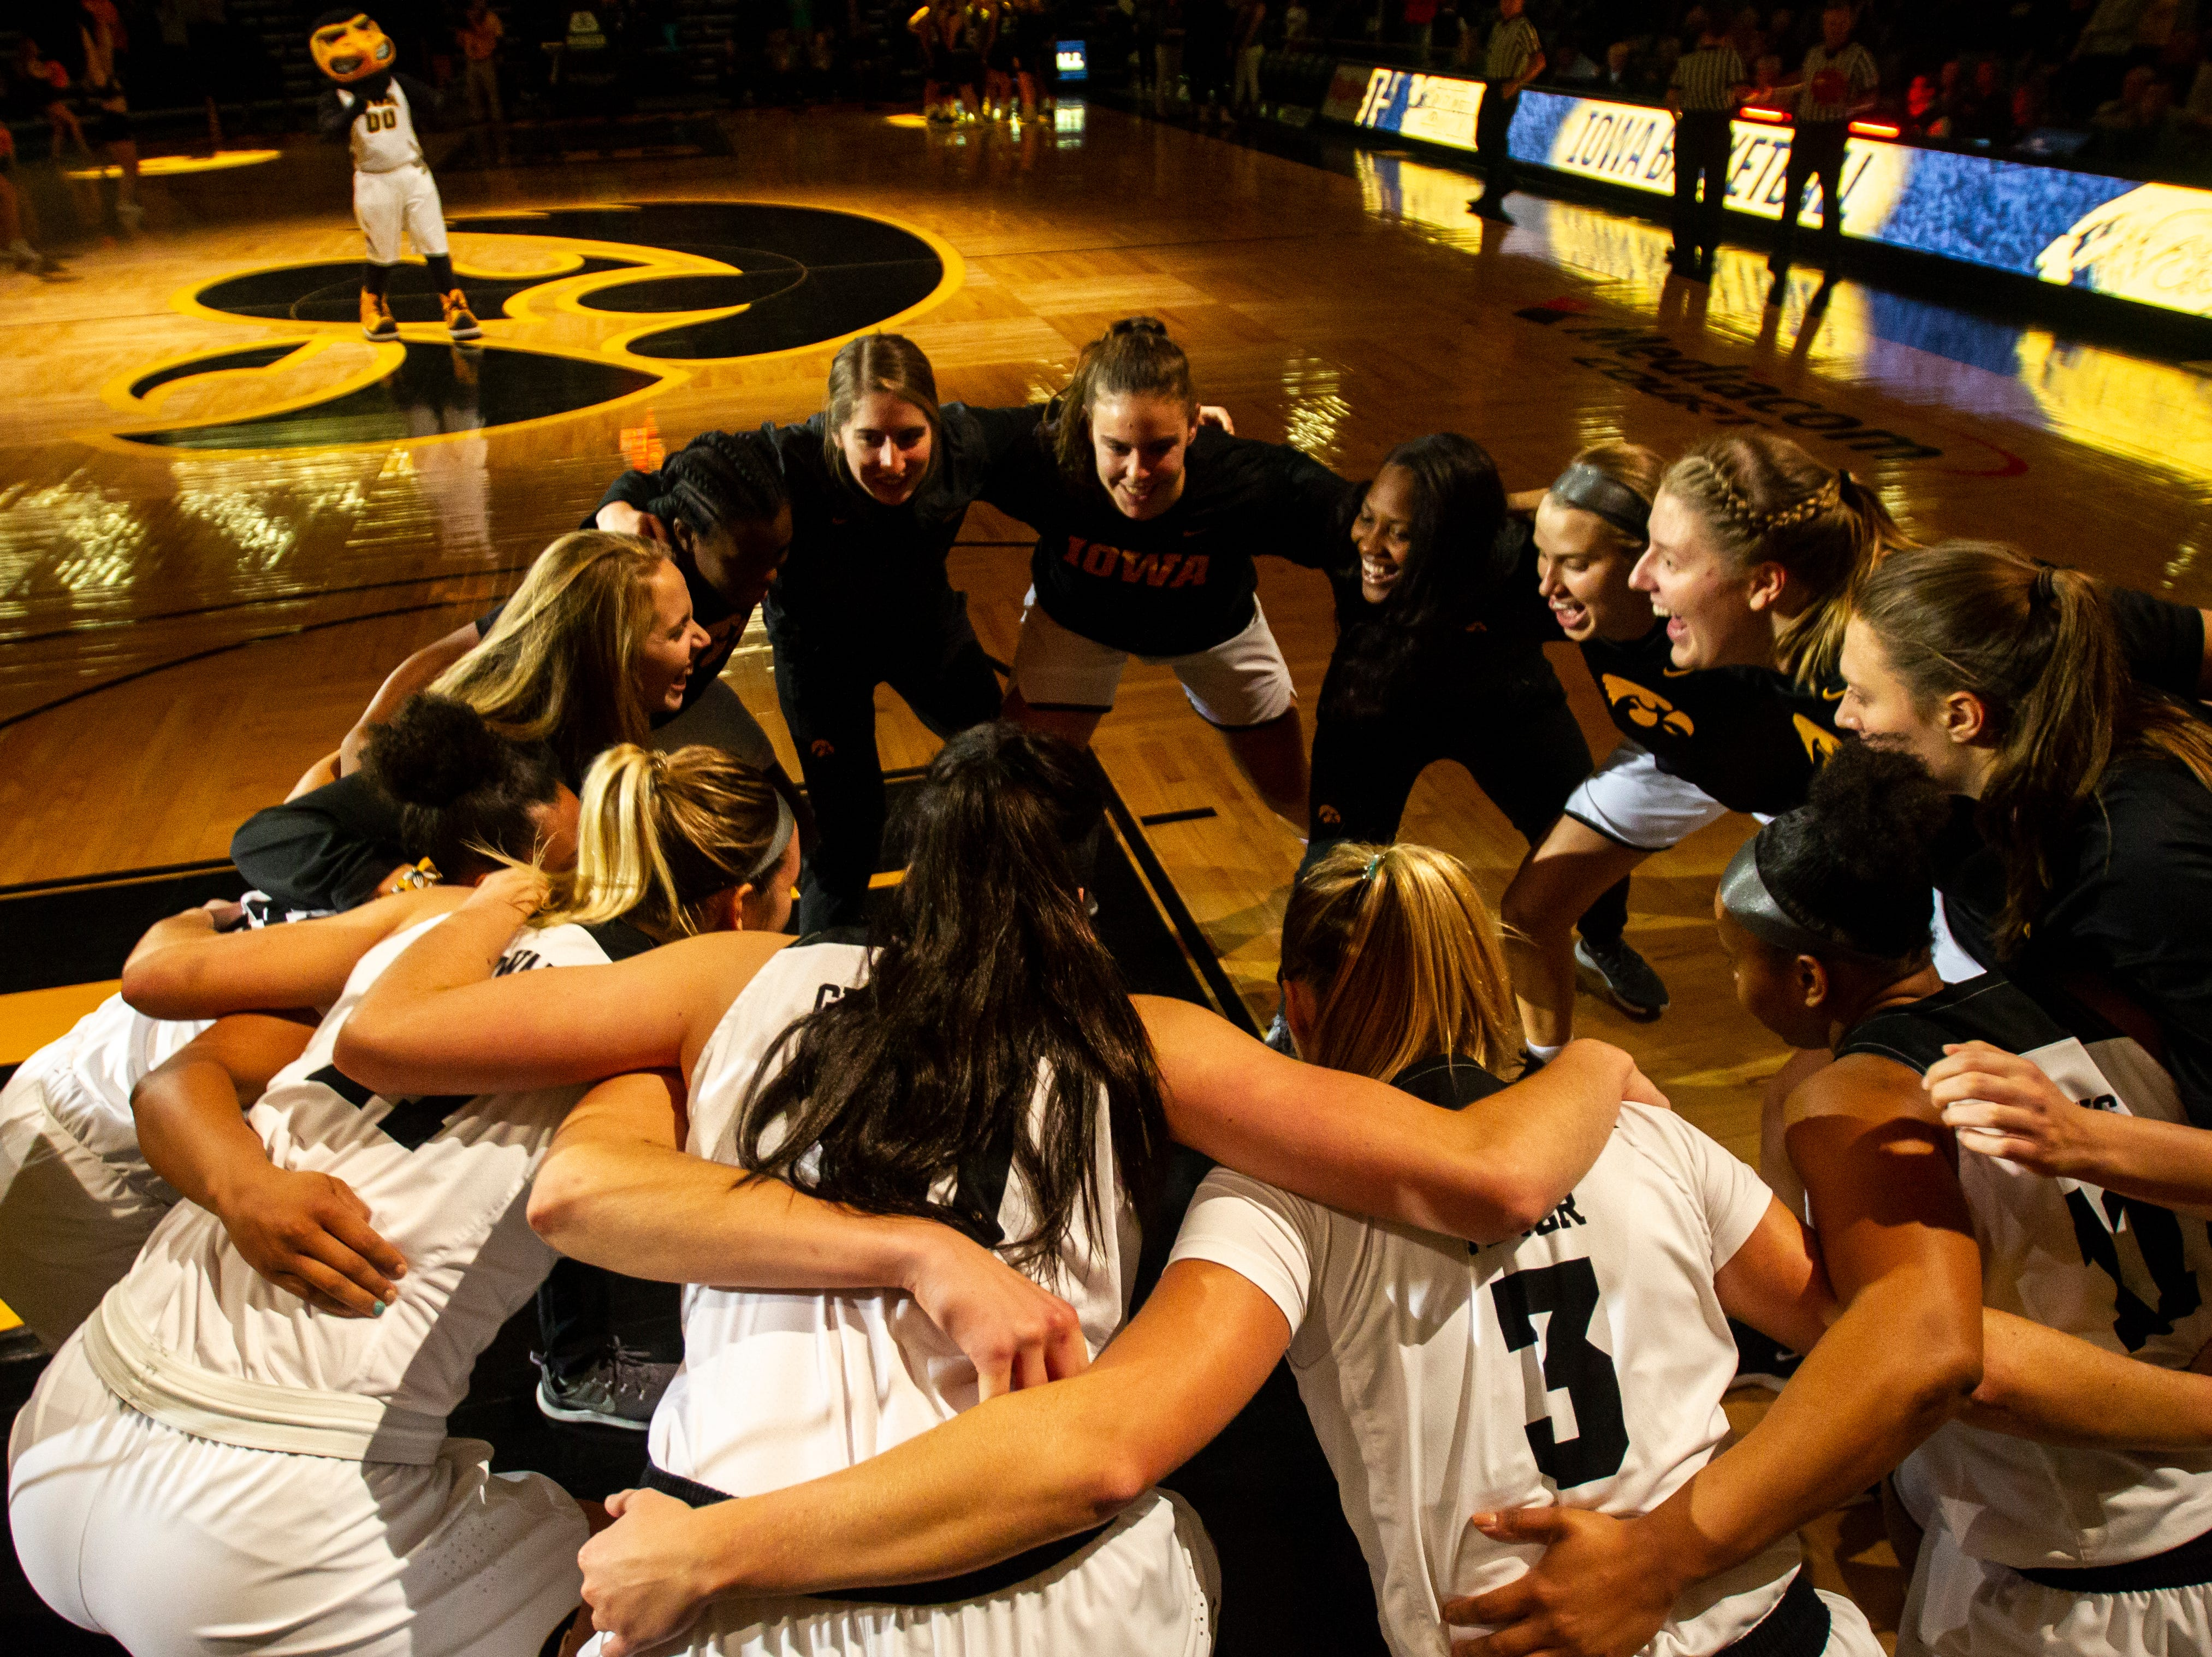 Iowa Hawkeyes players huddle before a women's basketball exhibition basketball game on Tuesday, Nov. 6, 2018, at Carver-Hawkeye Arena in Iowa City.